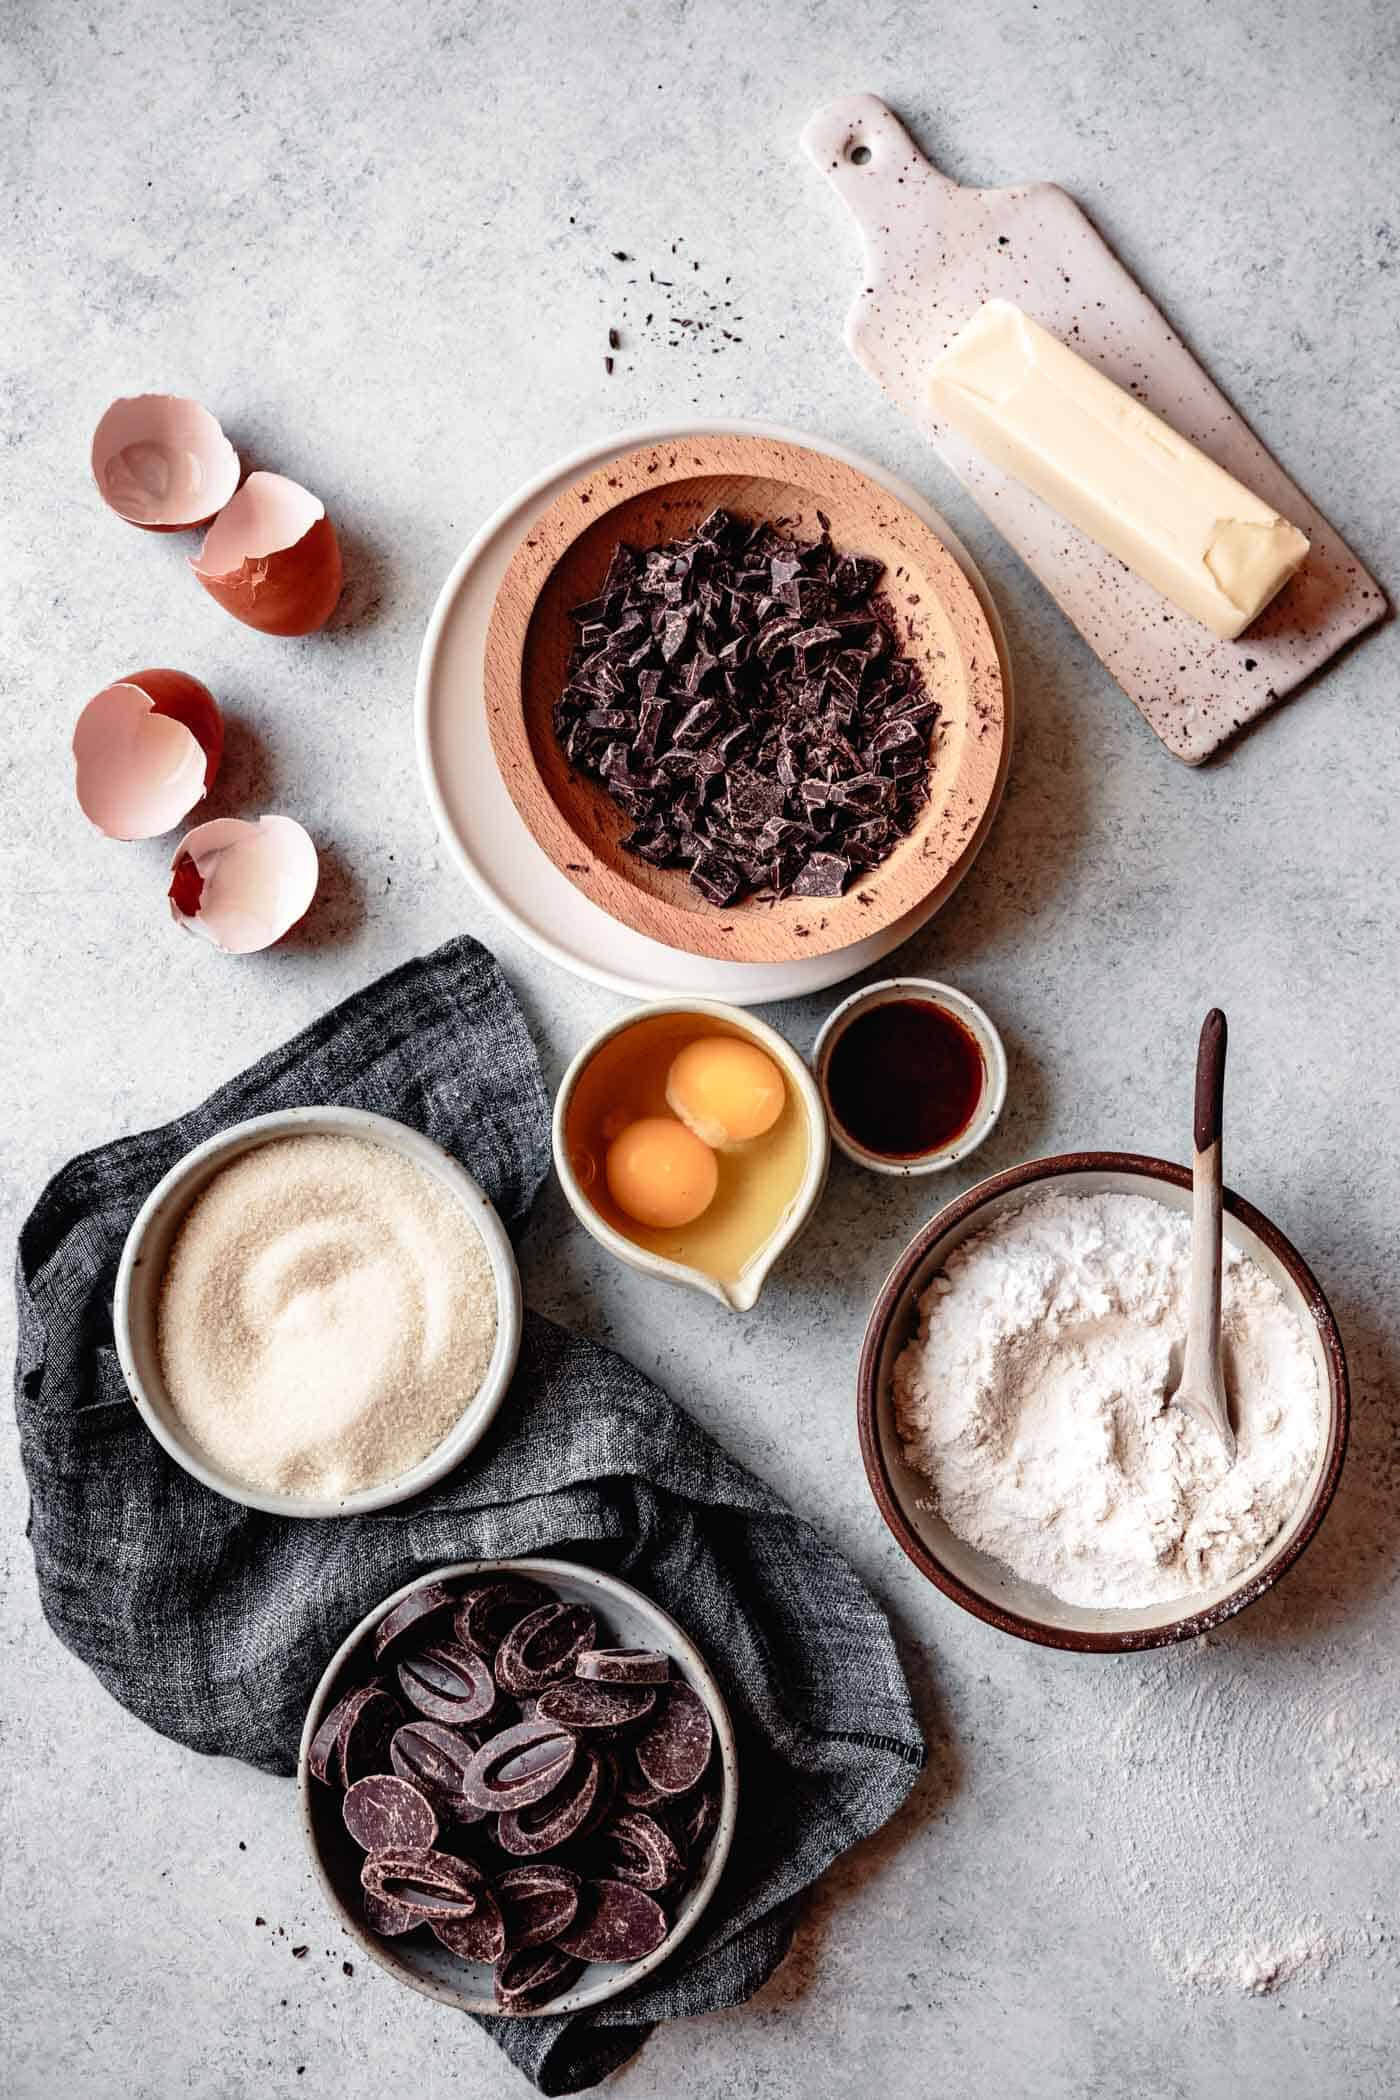 ingredients for gluten-free chocolate cookie recipe